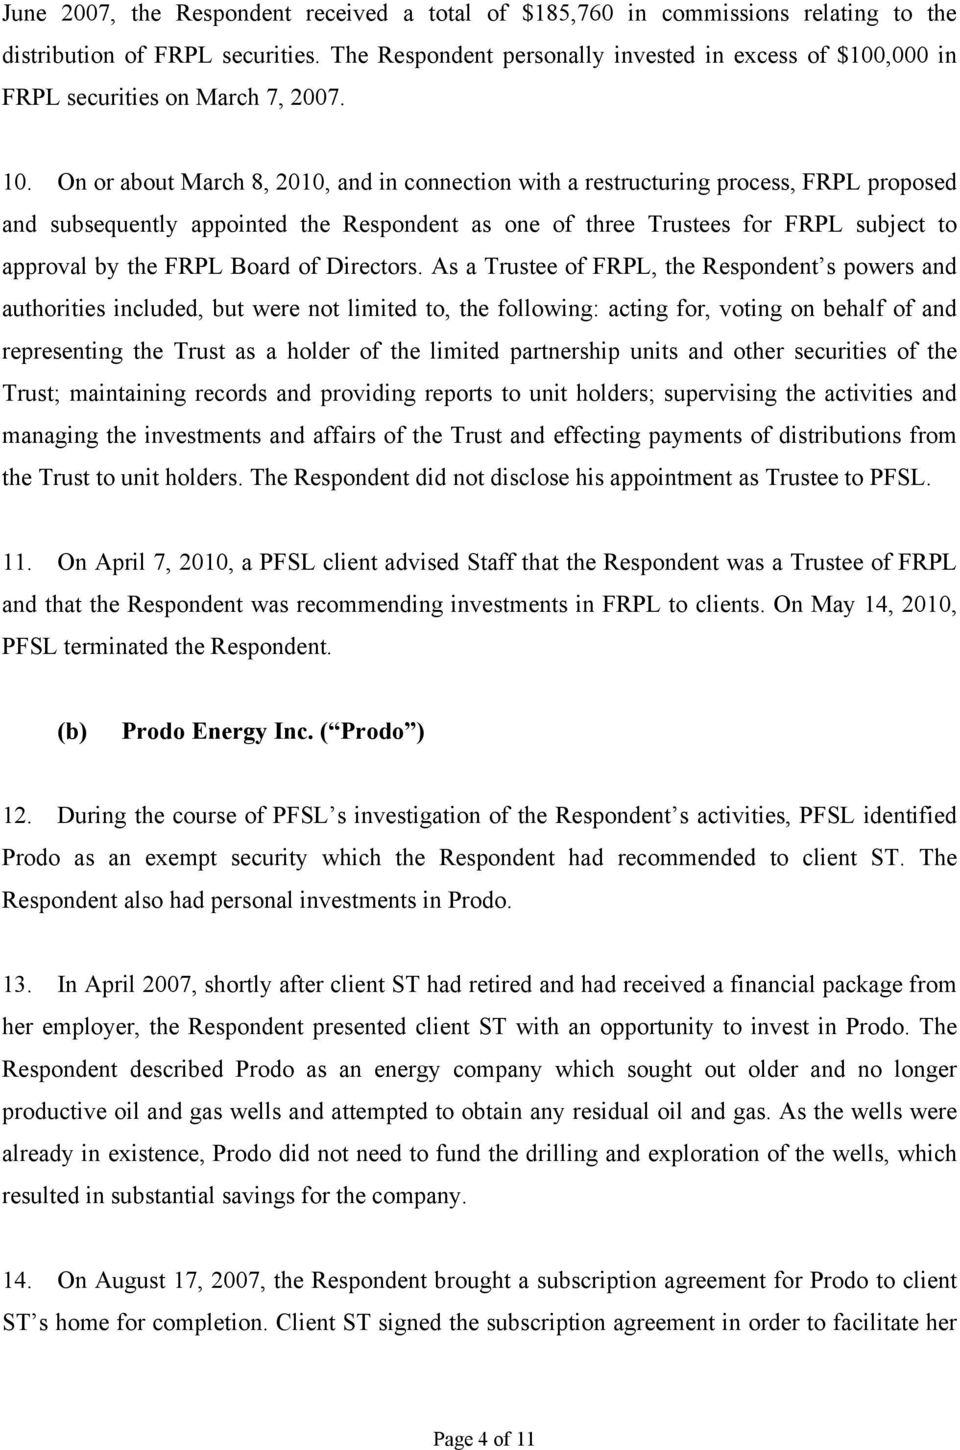 On or about March 8, 2010, and in connection with a restructuring process, FRPL proposed and subsequently appointed the Respondent as one of three Trustees for FRPL subject to approval by the FRPL